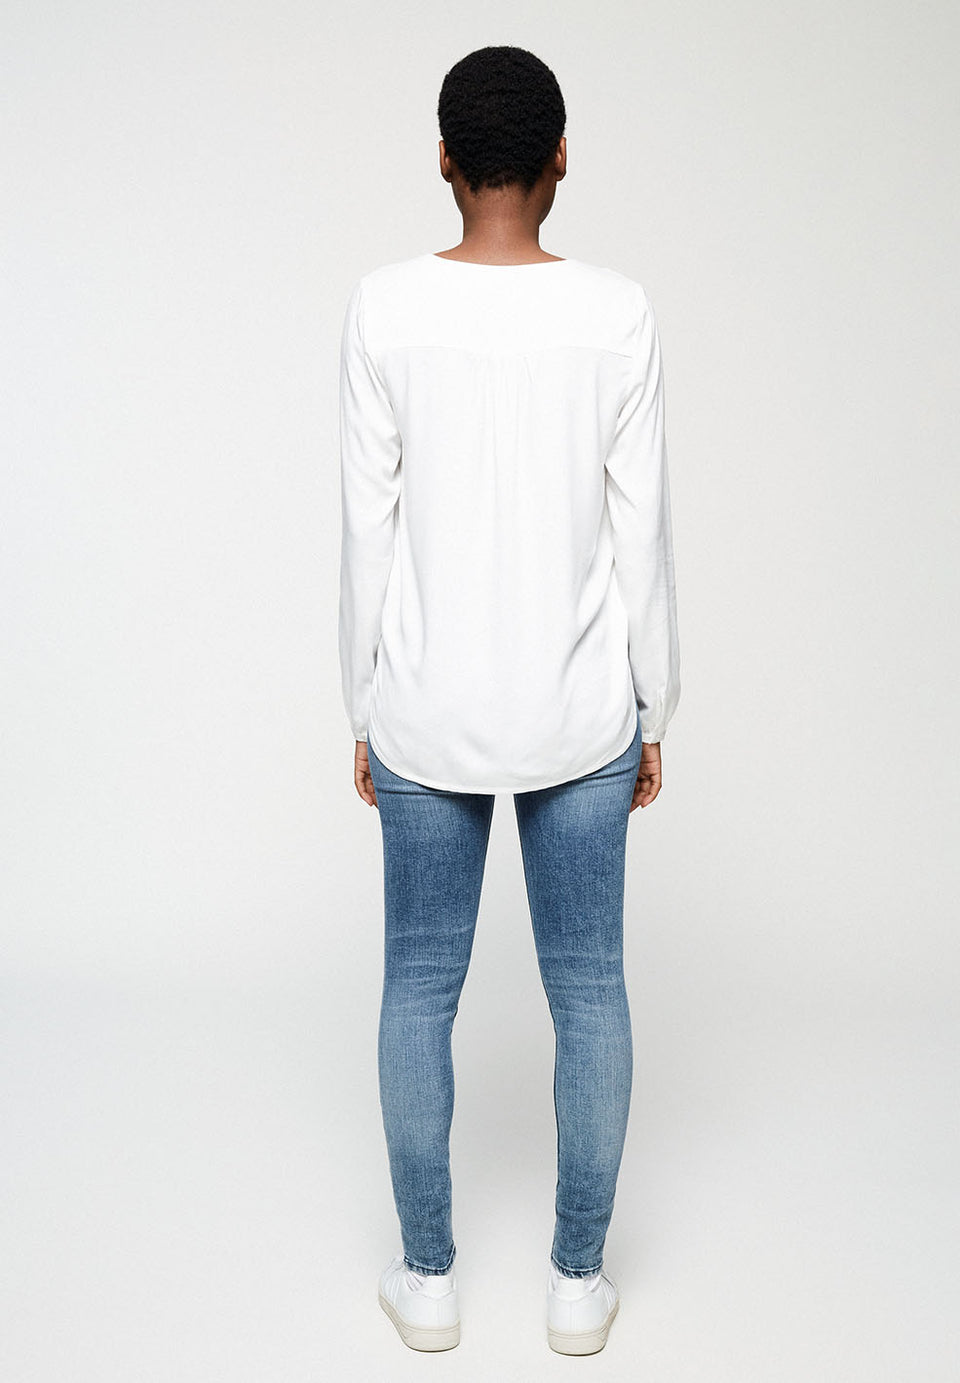 Felicitaas Blouse in White